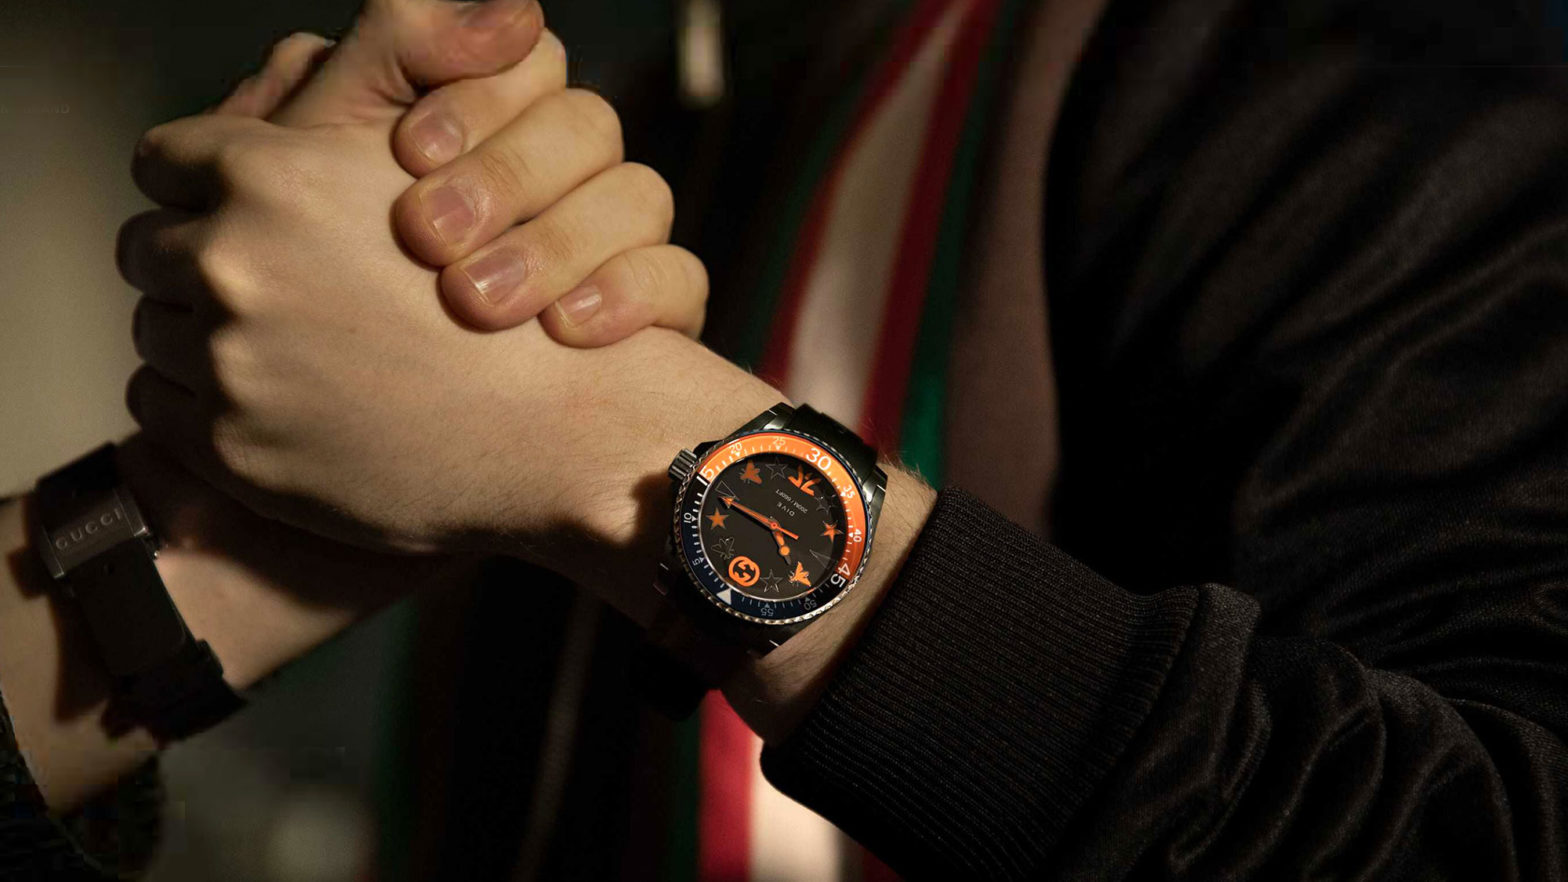 Fnatic x Gucci Limited Edition Gucci Dive Watch